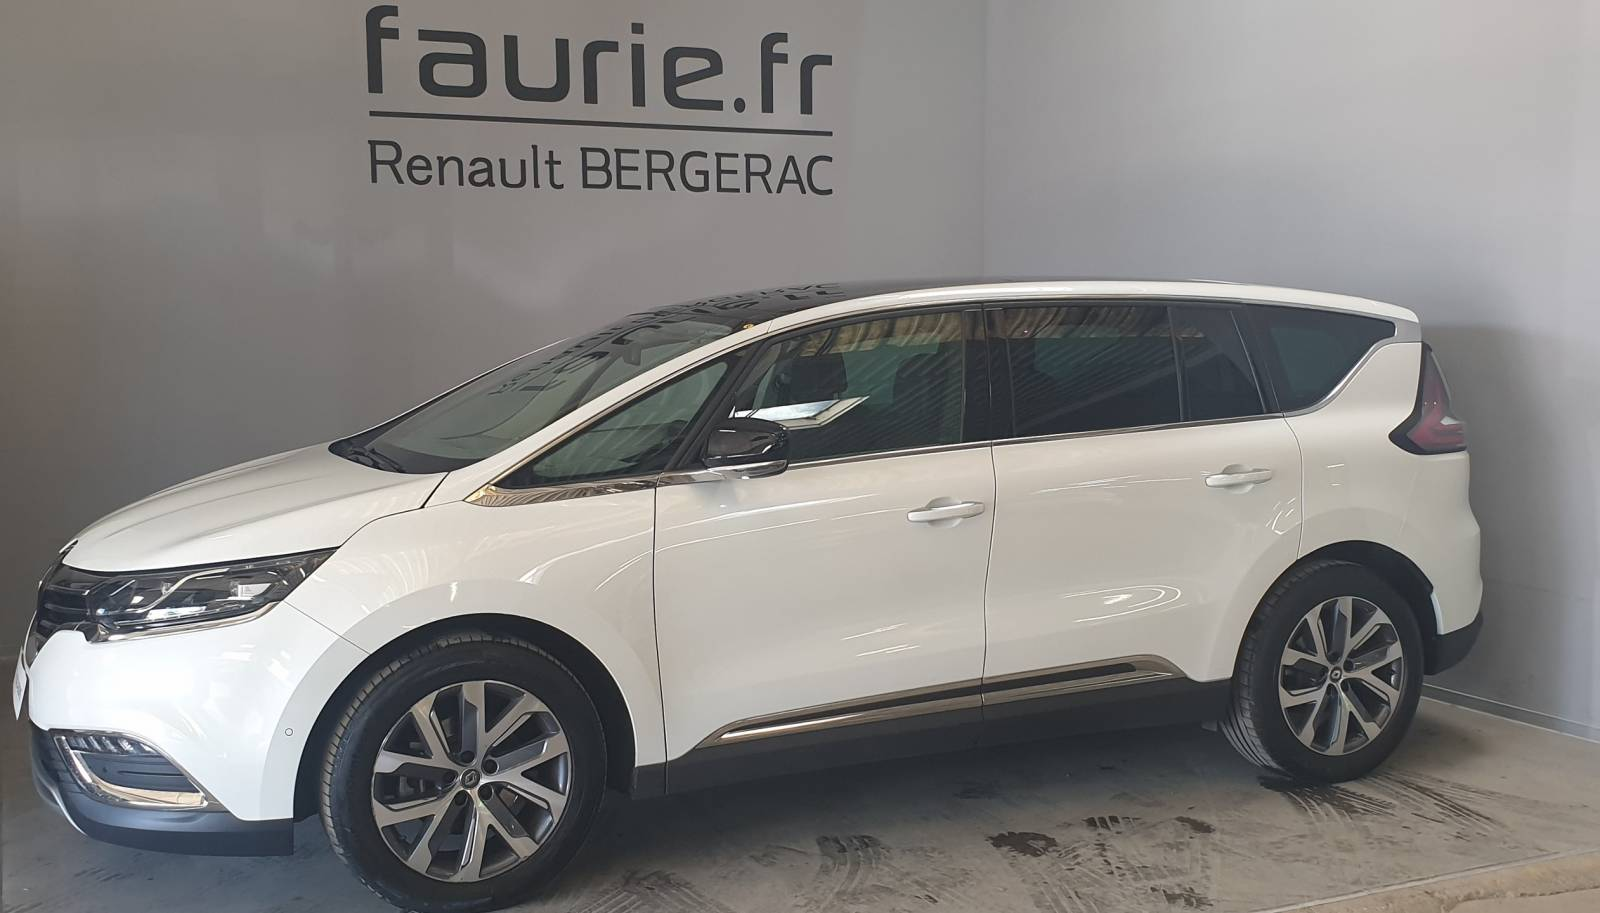 RENAULT Espace dCi 160 Energy Twin Turbo - véhicule d'occasion - Site Internet Faurie - Renault - Faurie Auto Bergerac - 24100 - Bergerac - 9